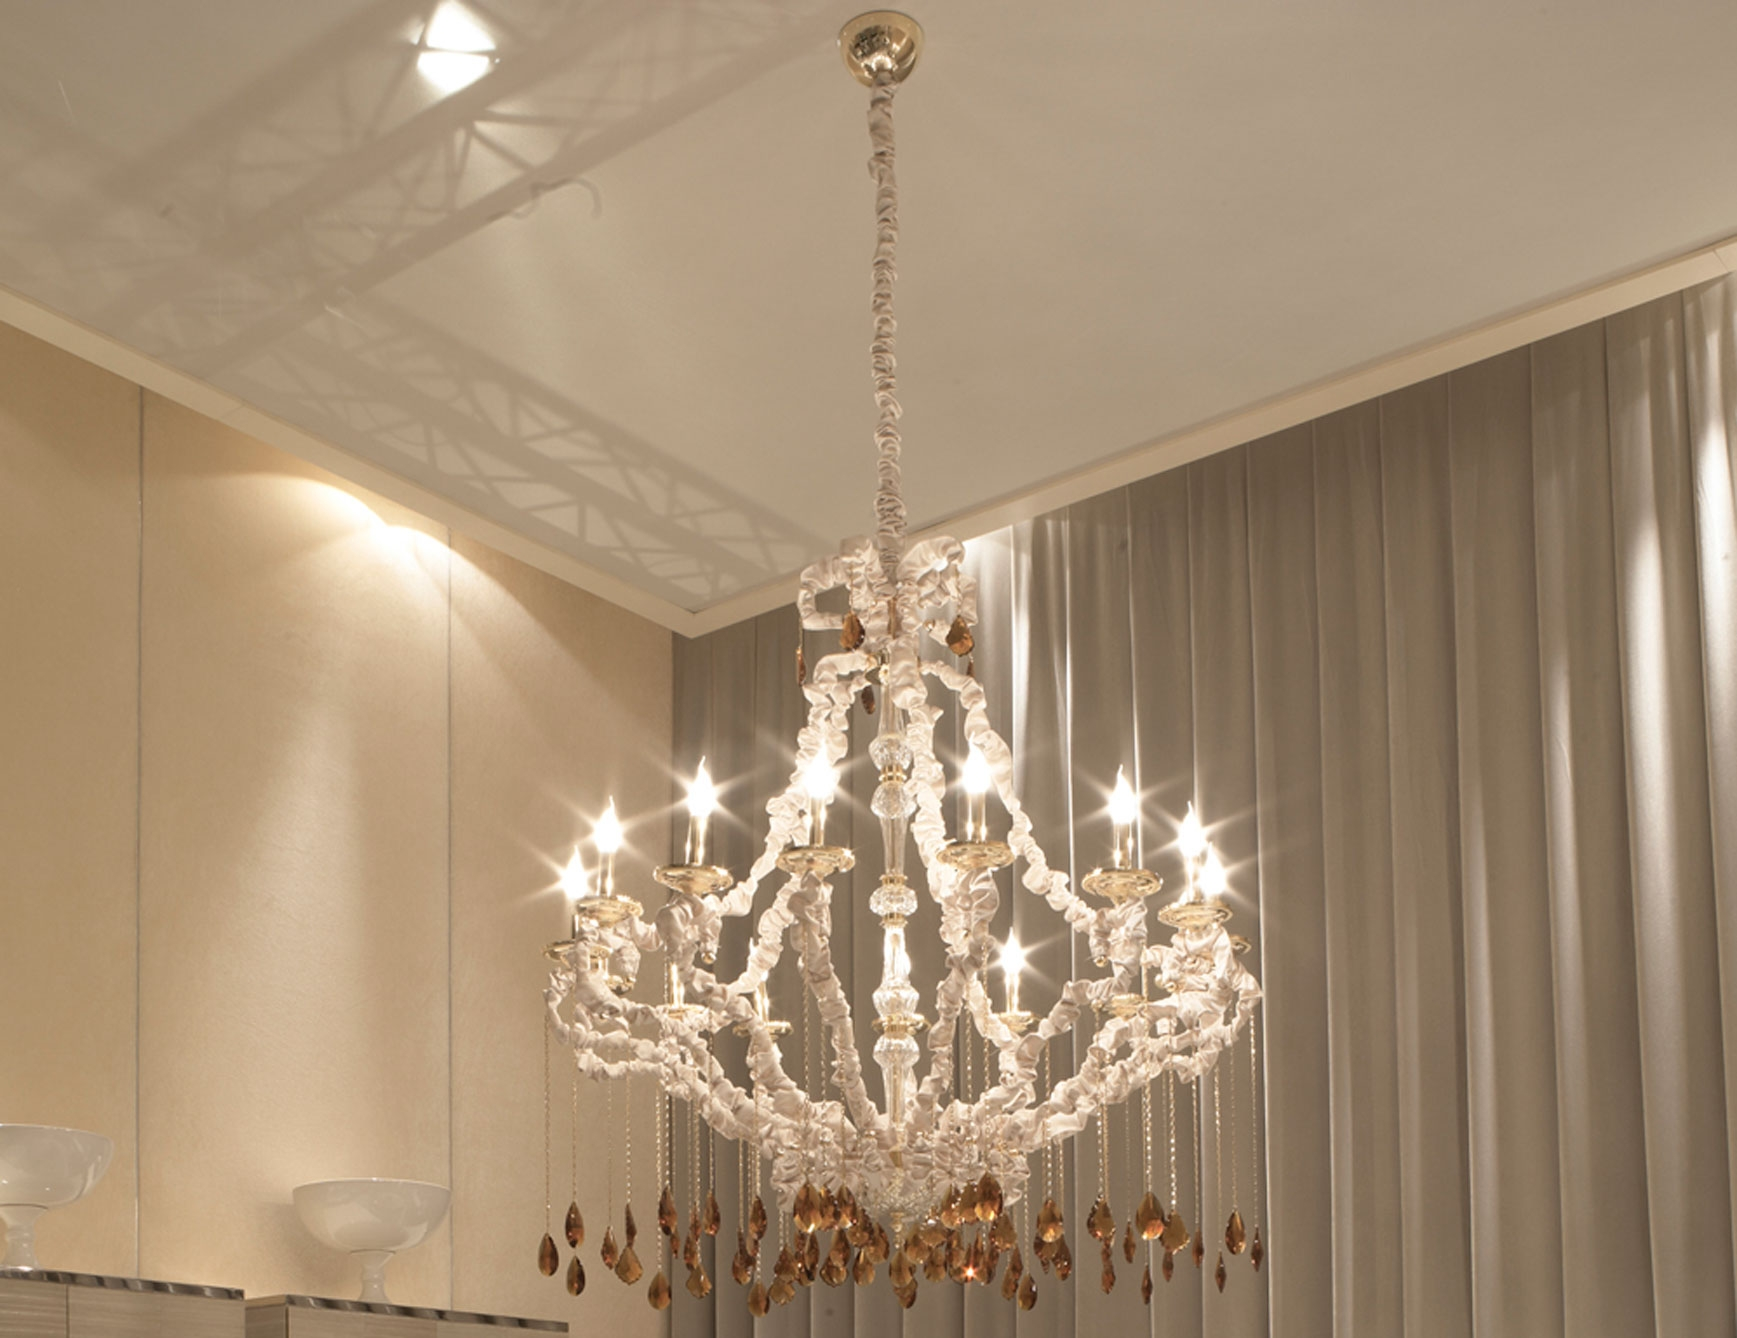 Murano Glass Chandeliers Italian Designer Luxury Chandeliers Within Italian Chandeliers (Image 10 of 15)